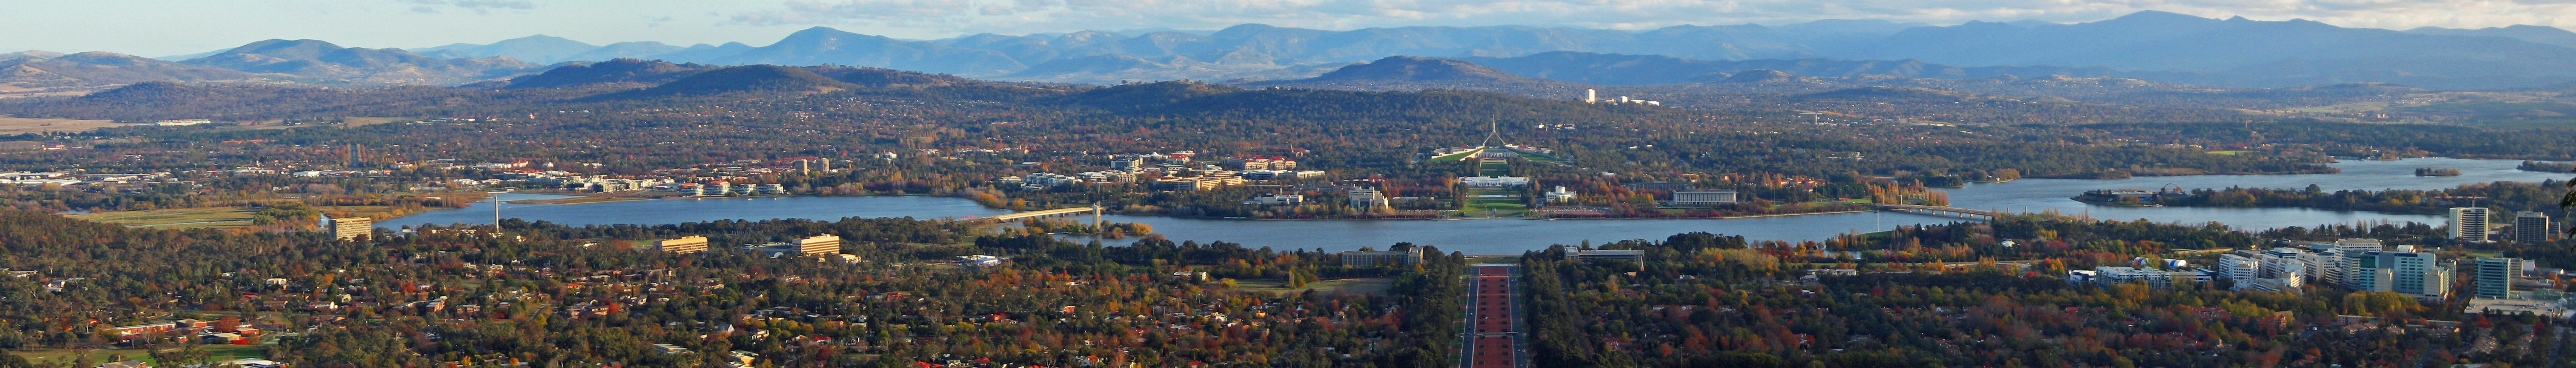 Canberra, viewed from Mount Ainslie